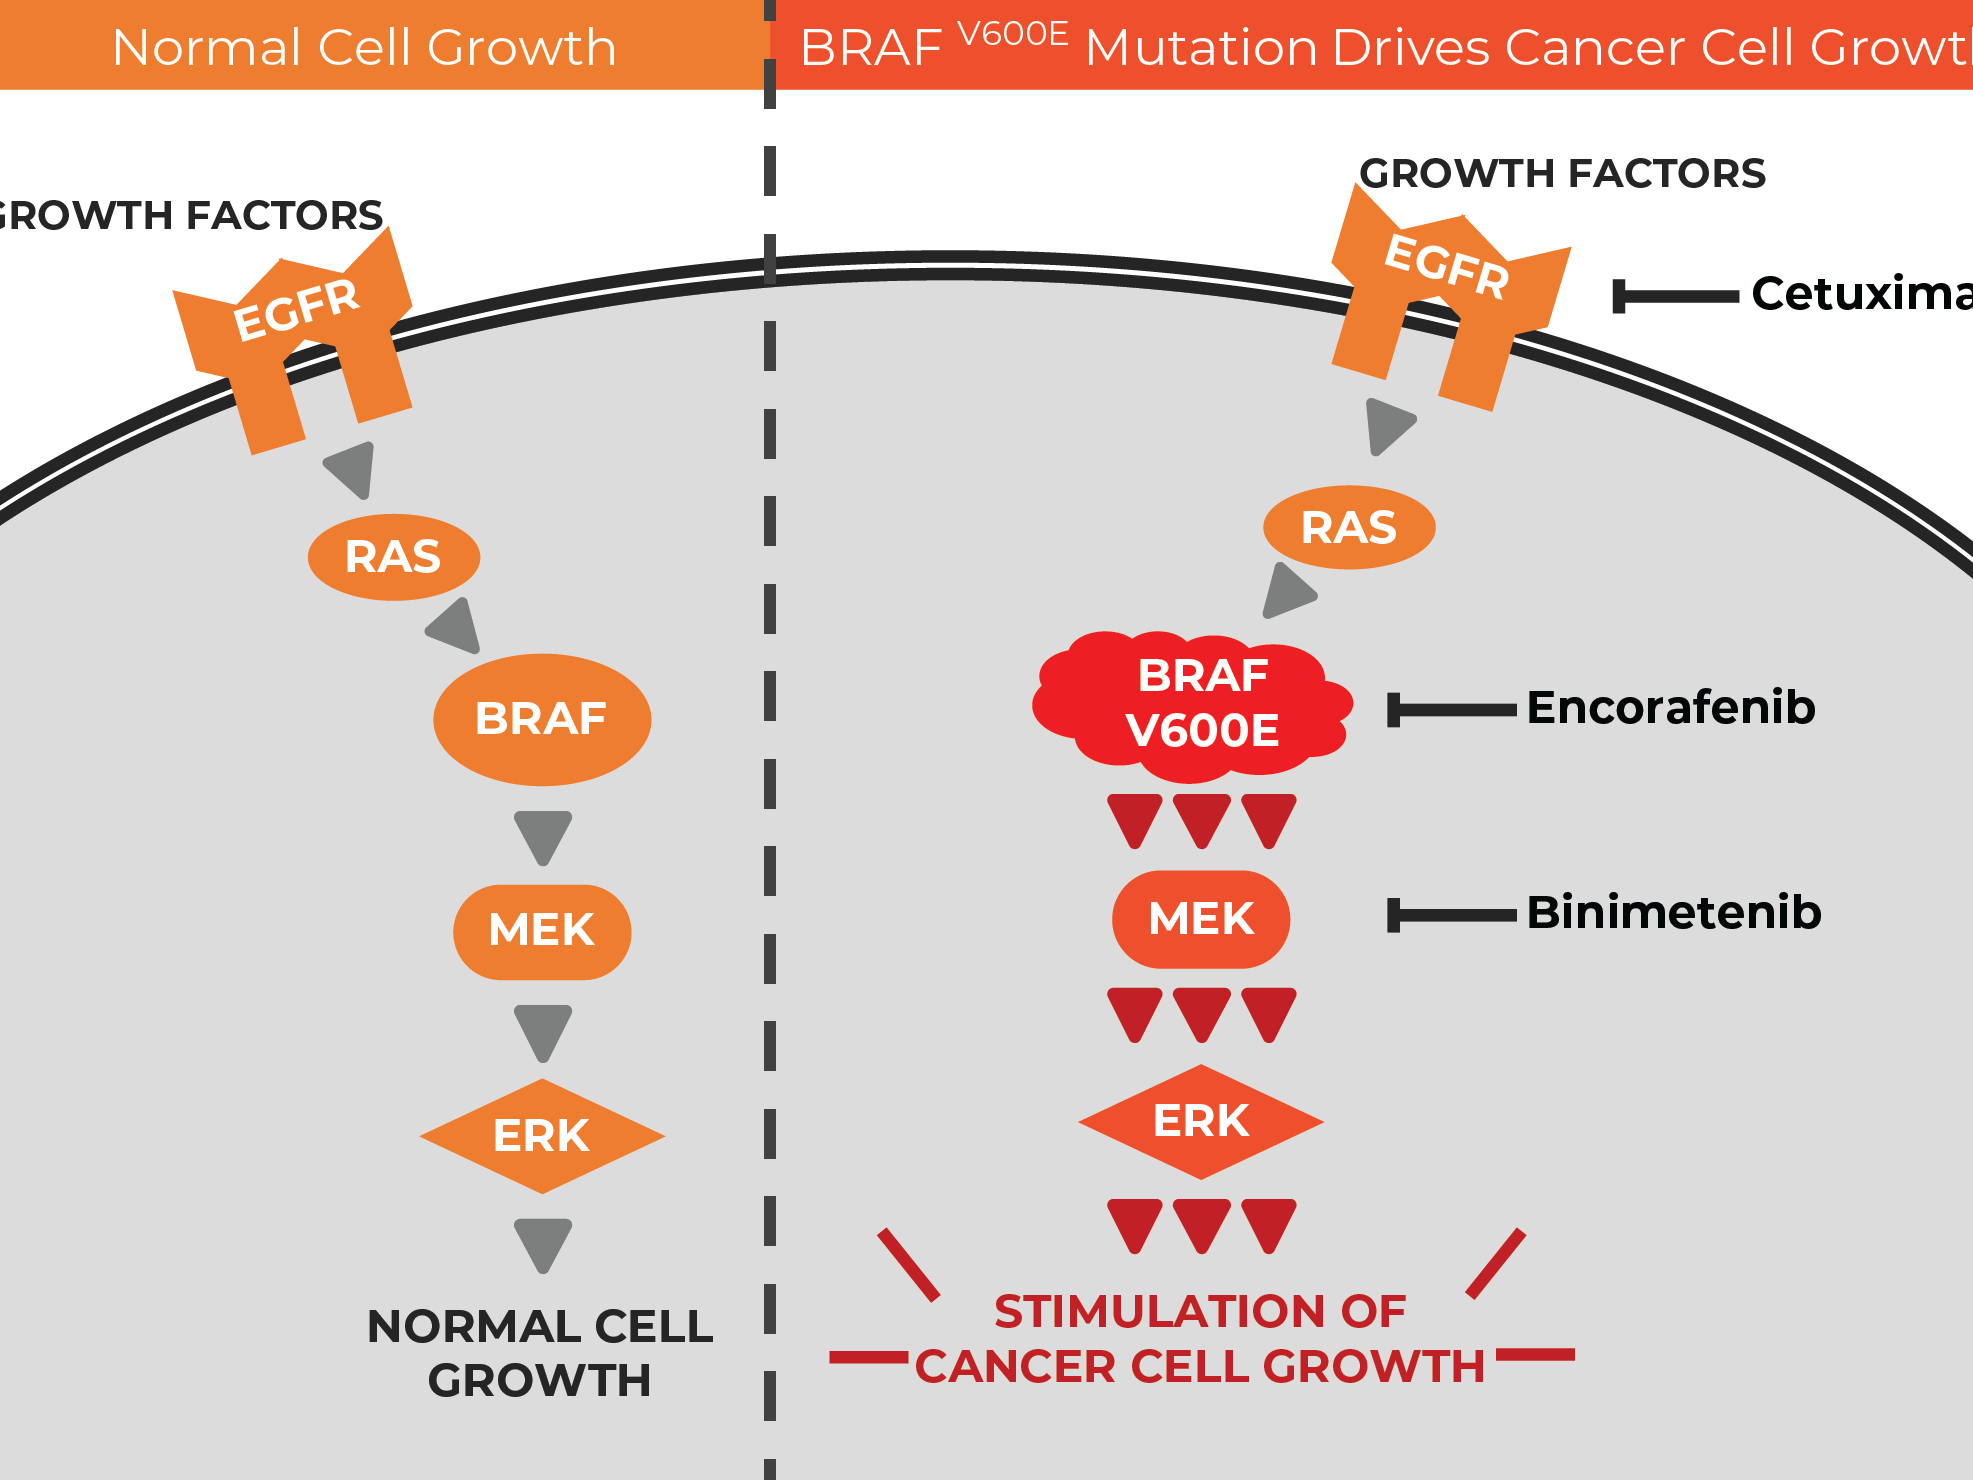 Targeted Drug Trio For Colorectal Cancer With Braf Mutations National Cancer Institute